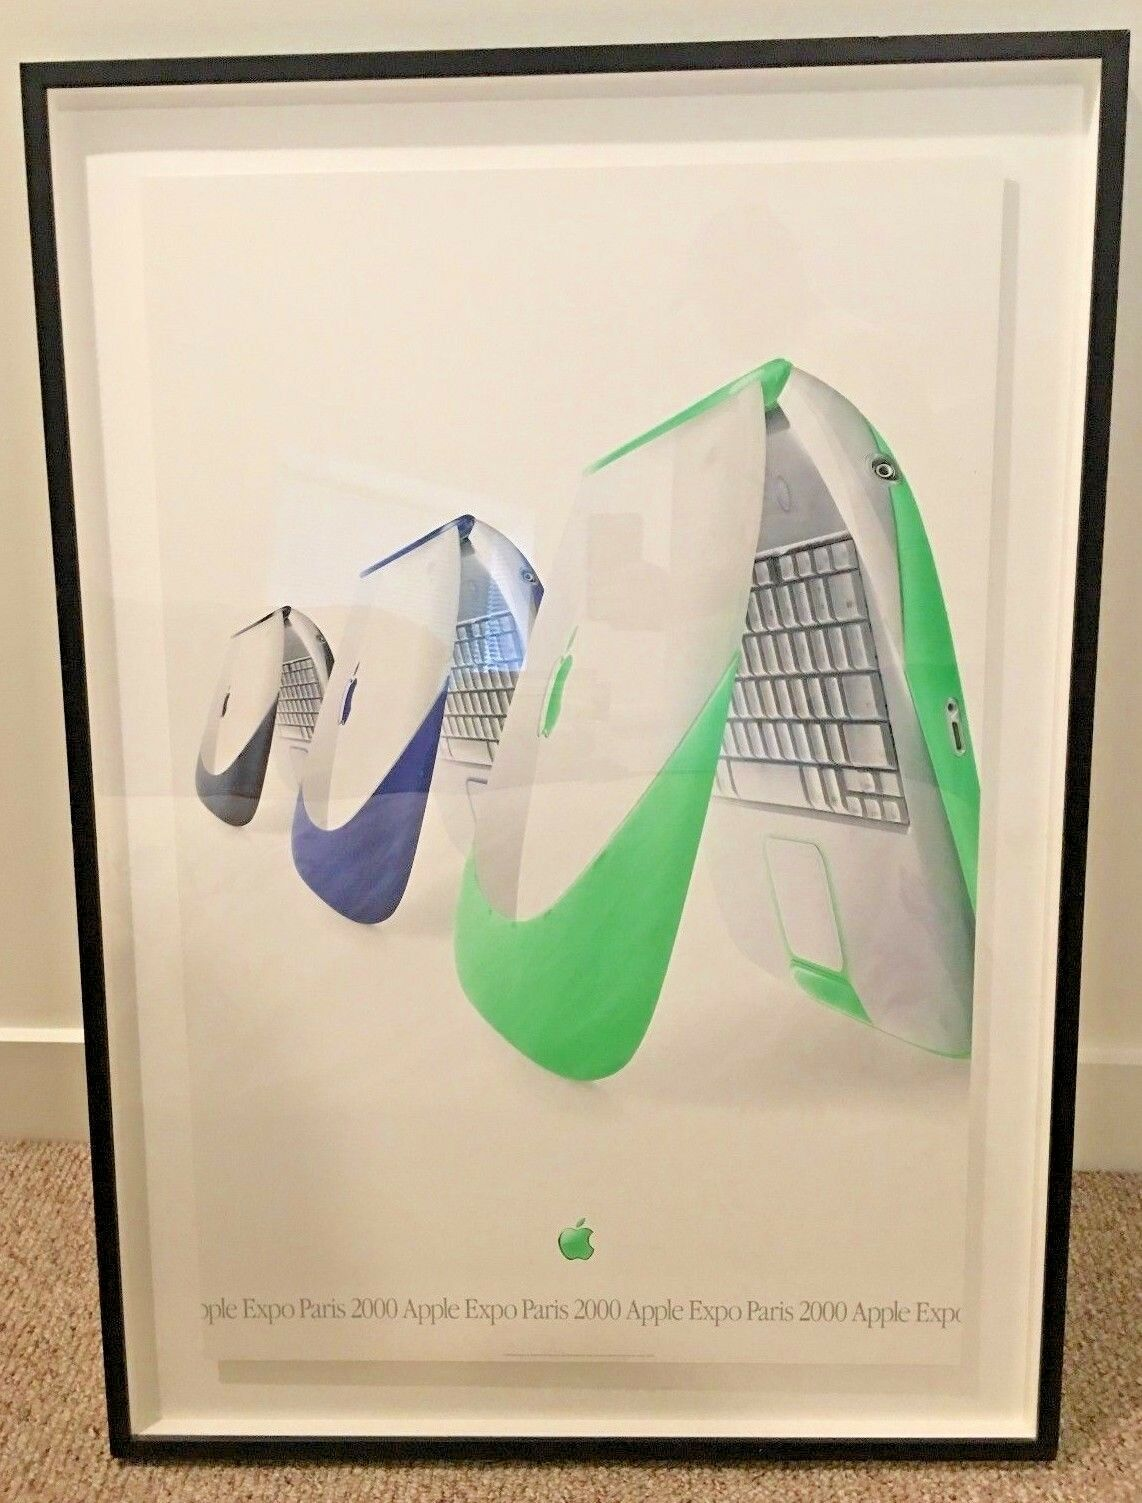 Apple Expo Paris 2000, iBook custom framed poster print,  one-of-a-kind, rare